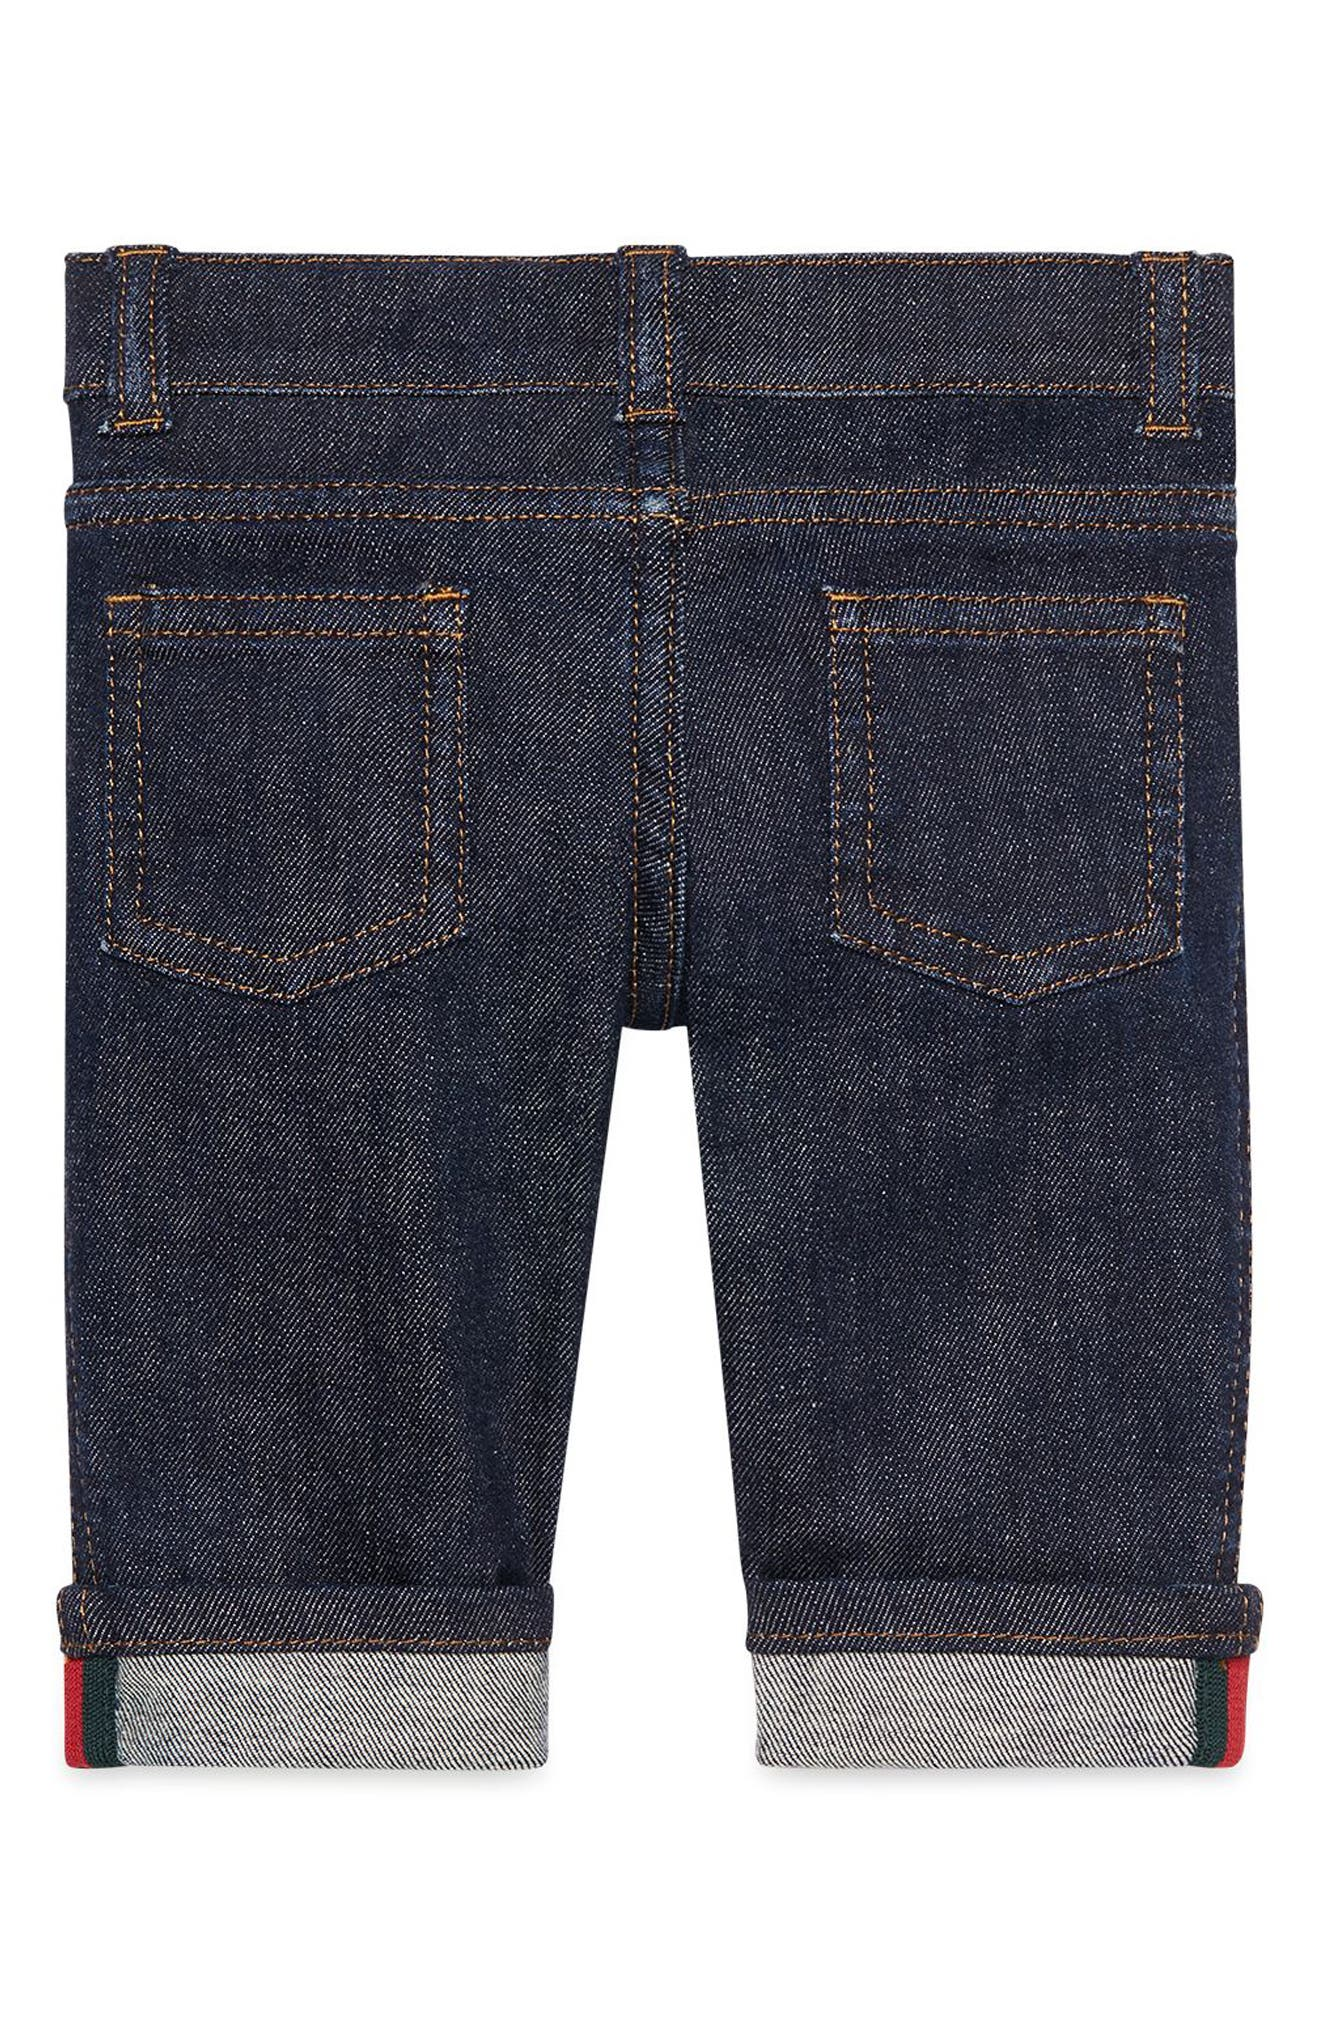 Straight Leg Jeans,                             Alternate thumbnail 2, color,                             INDIGO